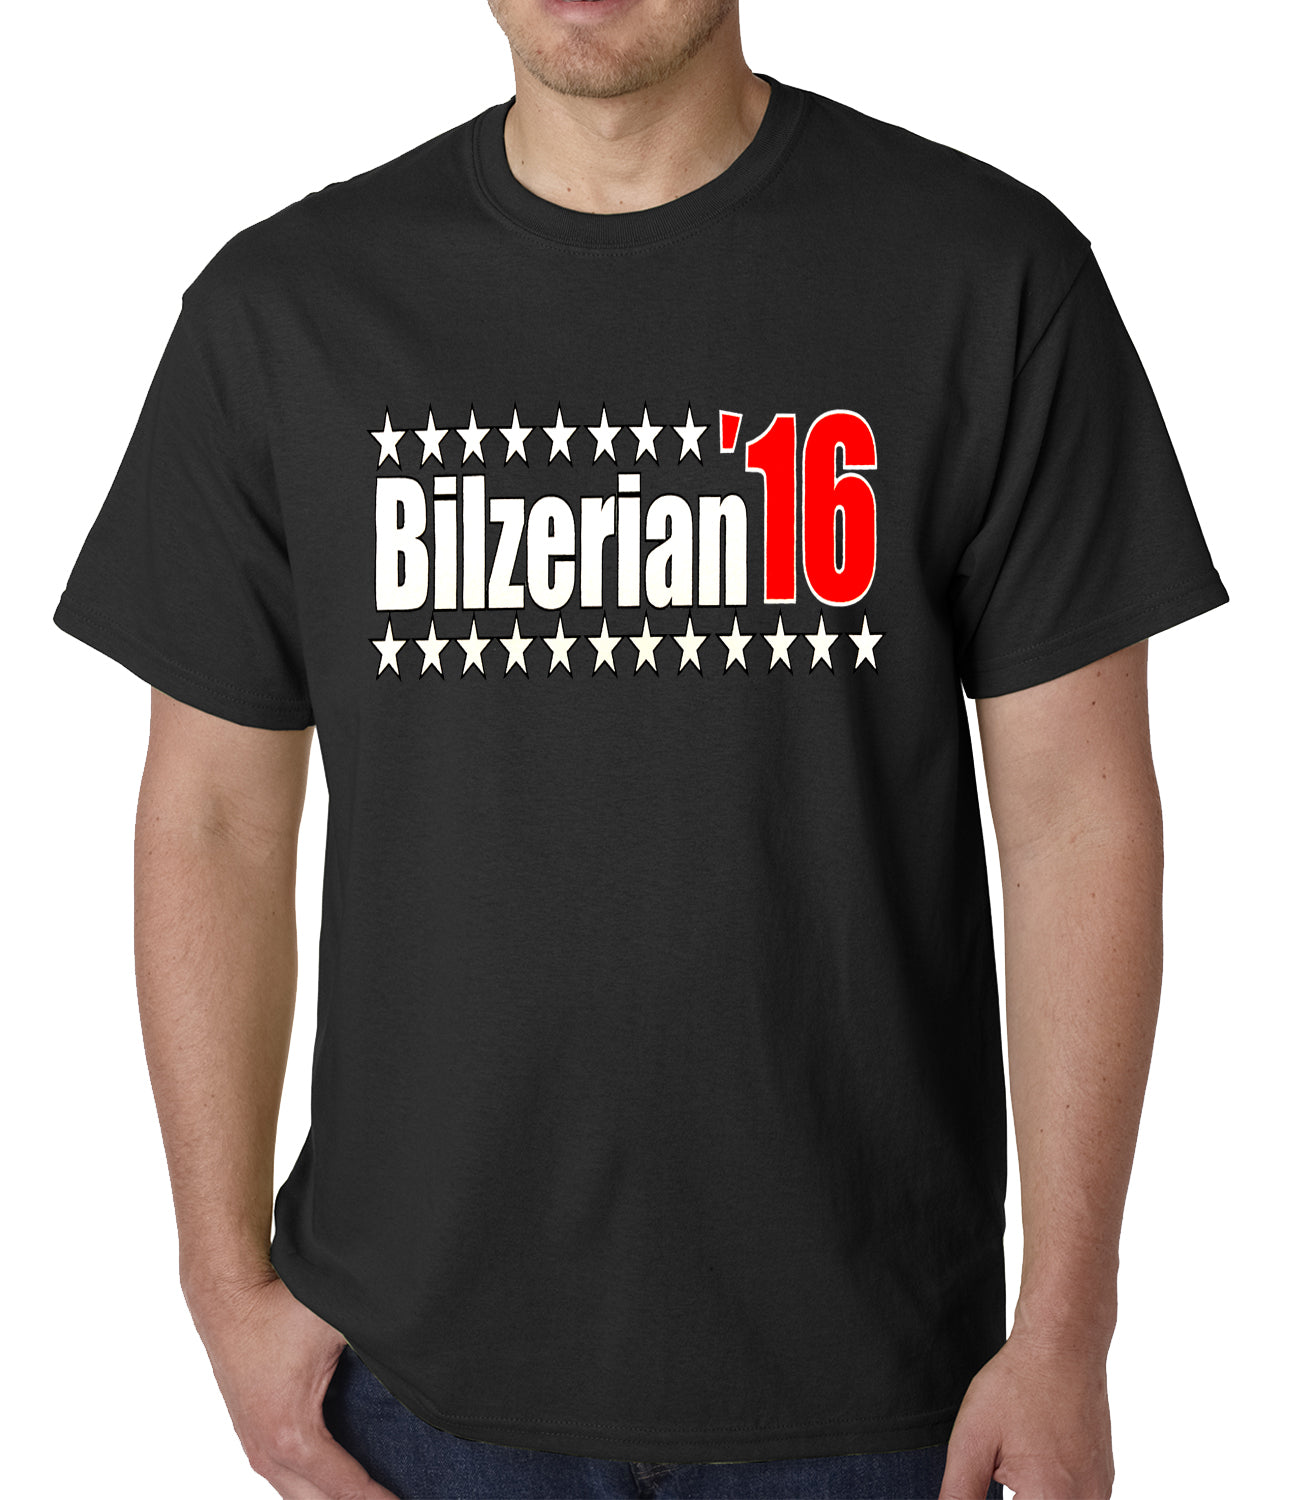 Full Color Bilzerian '16 - Vote For Bilzerian For President in 2016 Mens T-shirt